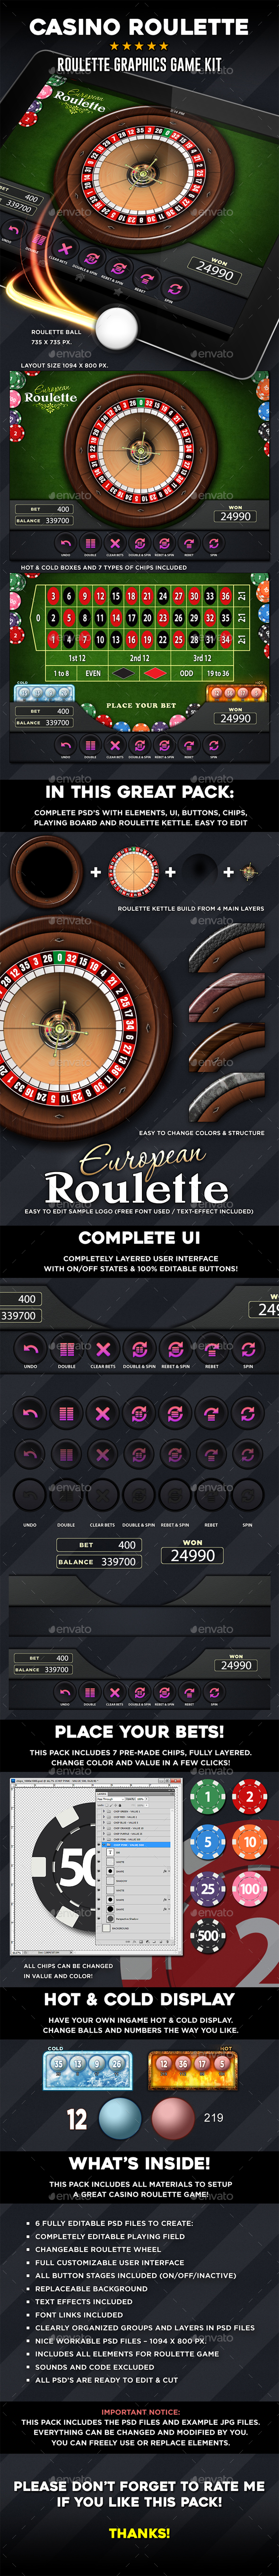 Casino Roulette Graphics Game Kit - Game Kits Game Assets